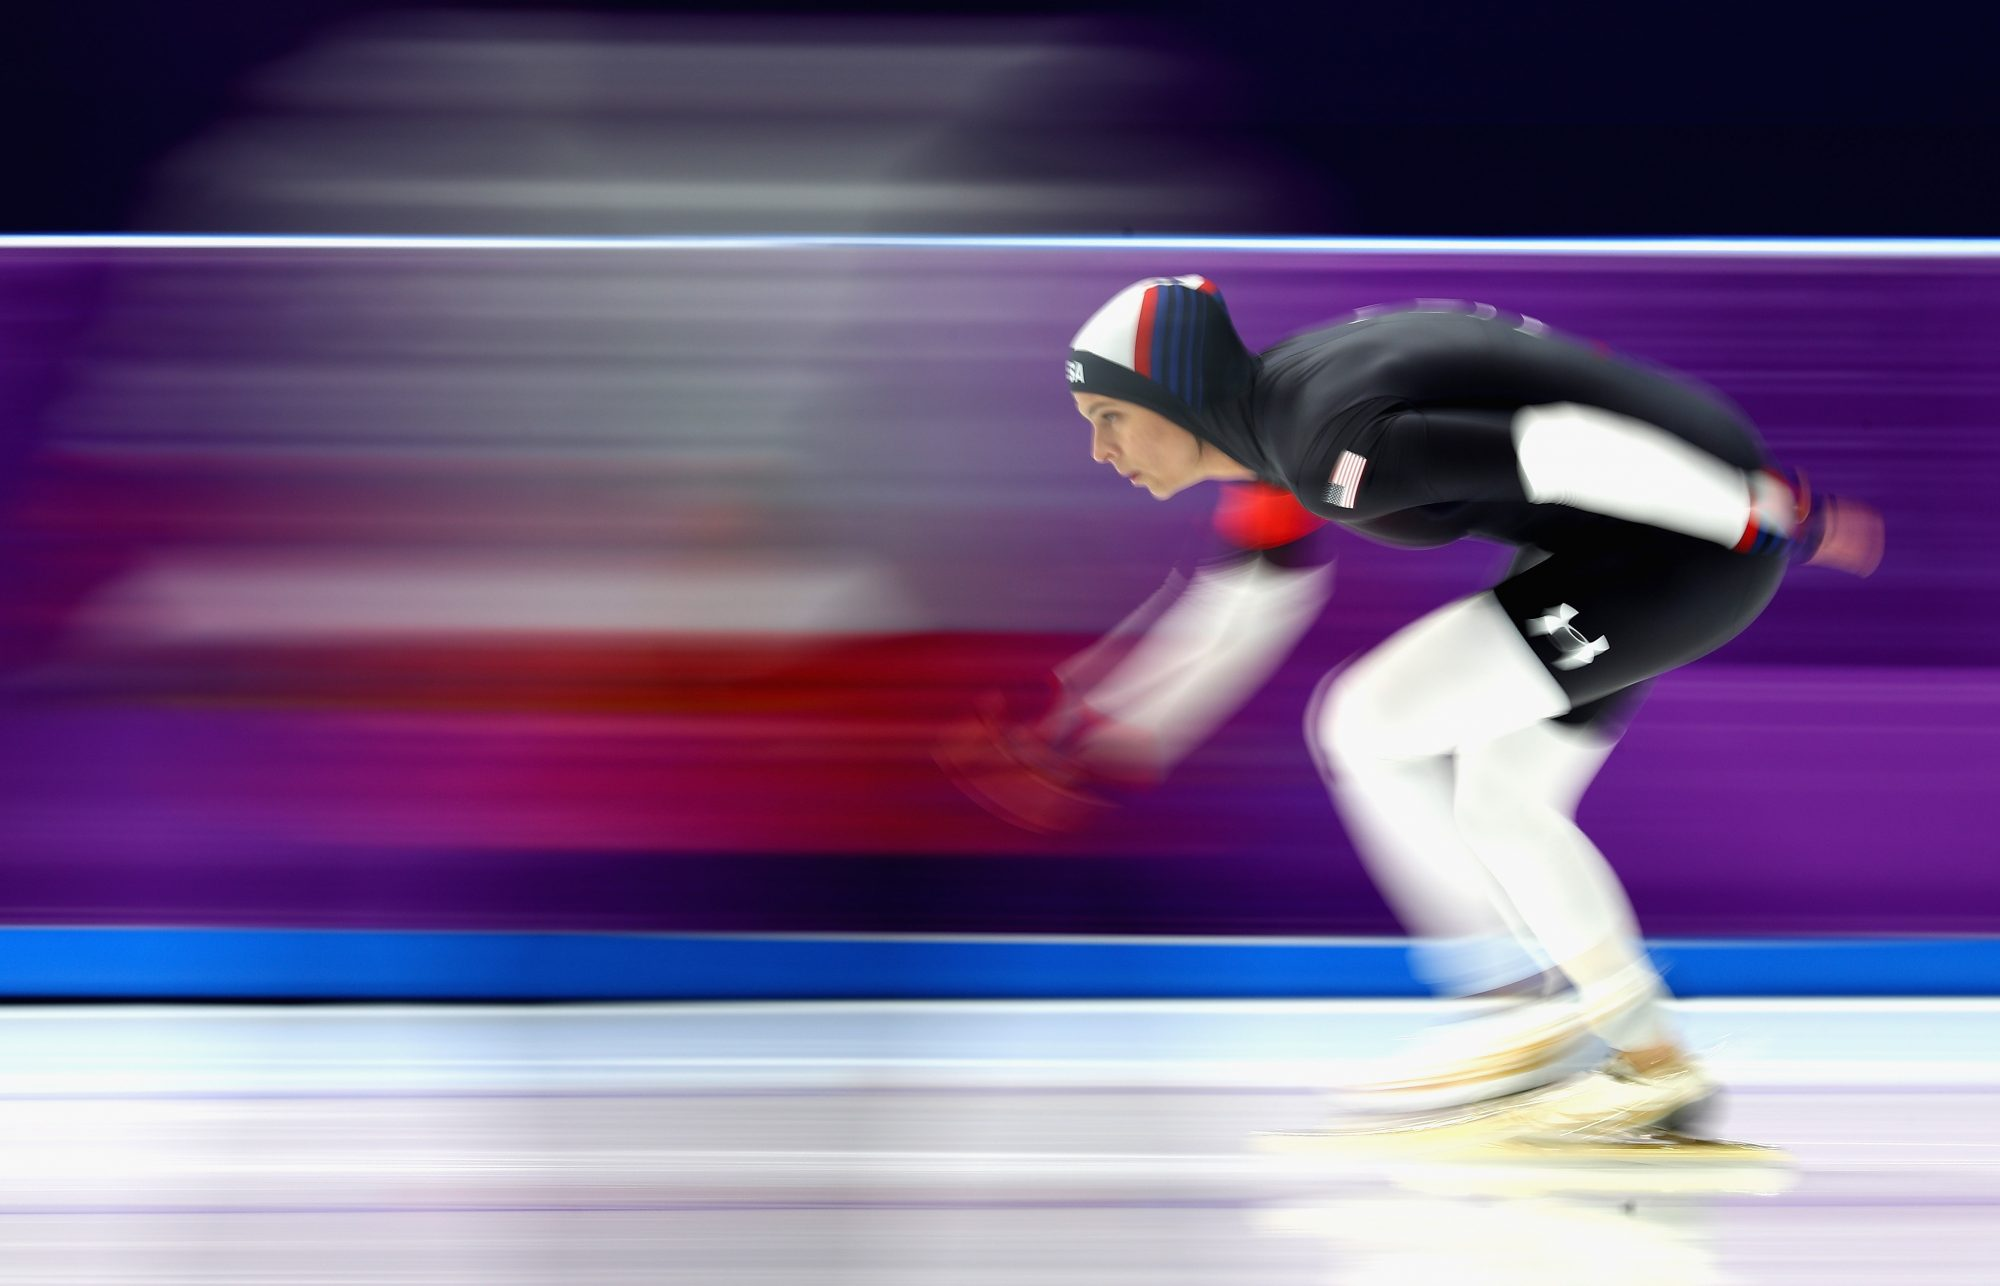 How many calories does speed skating burn?